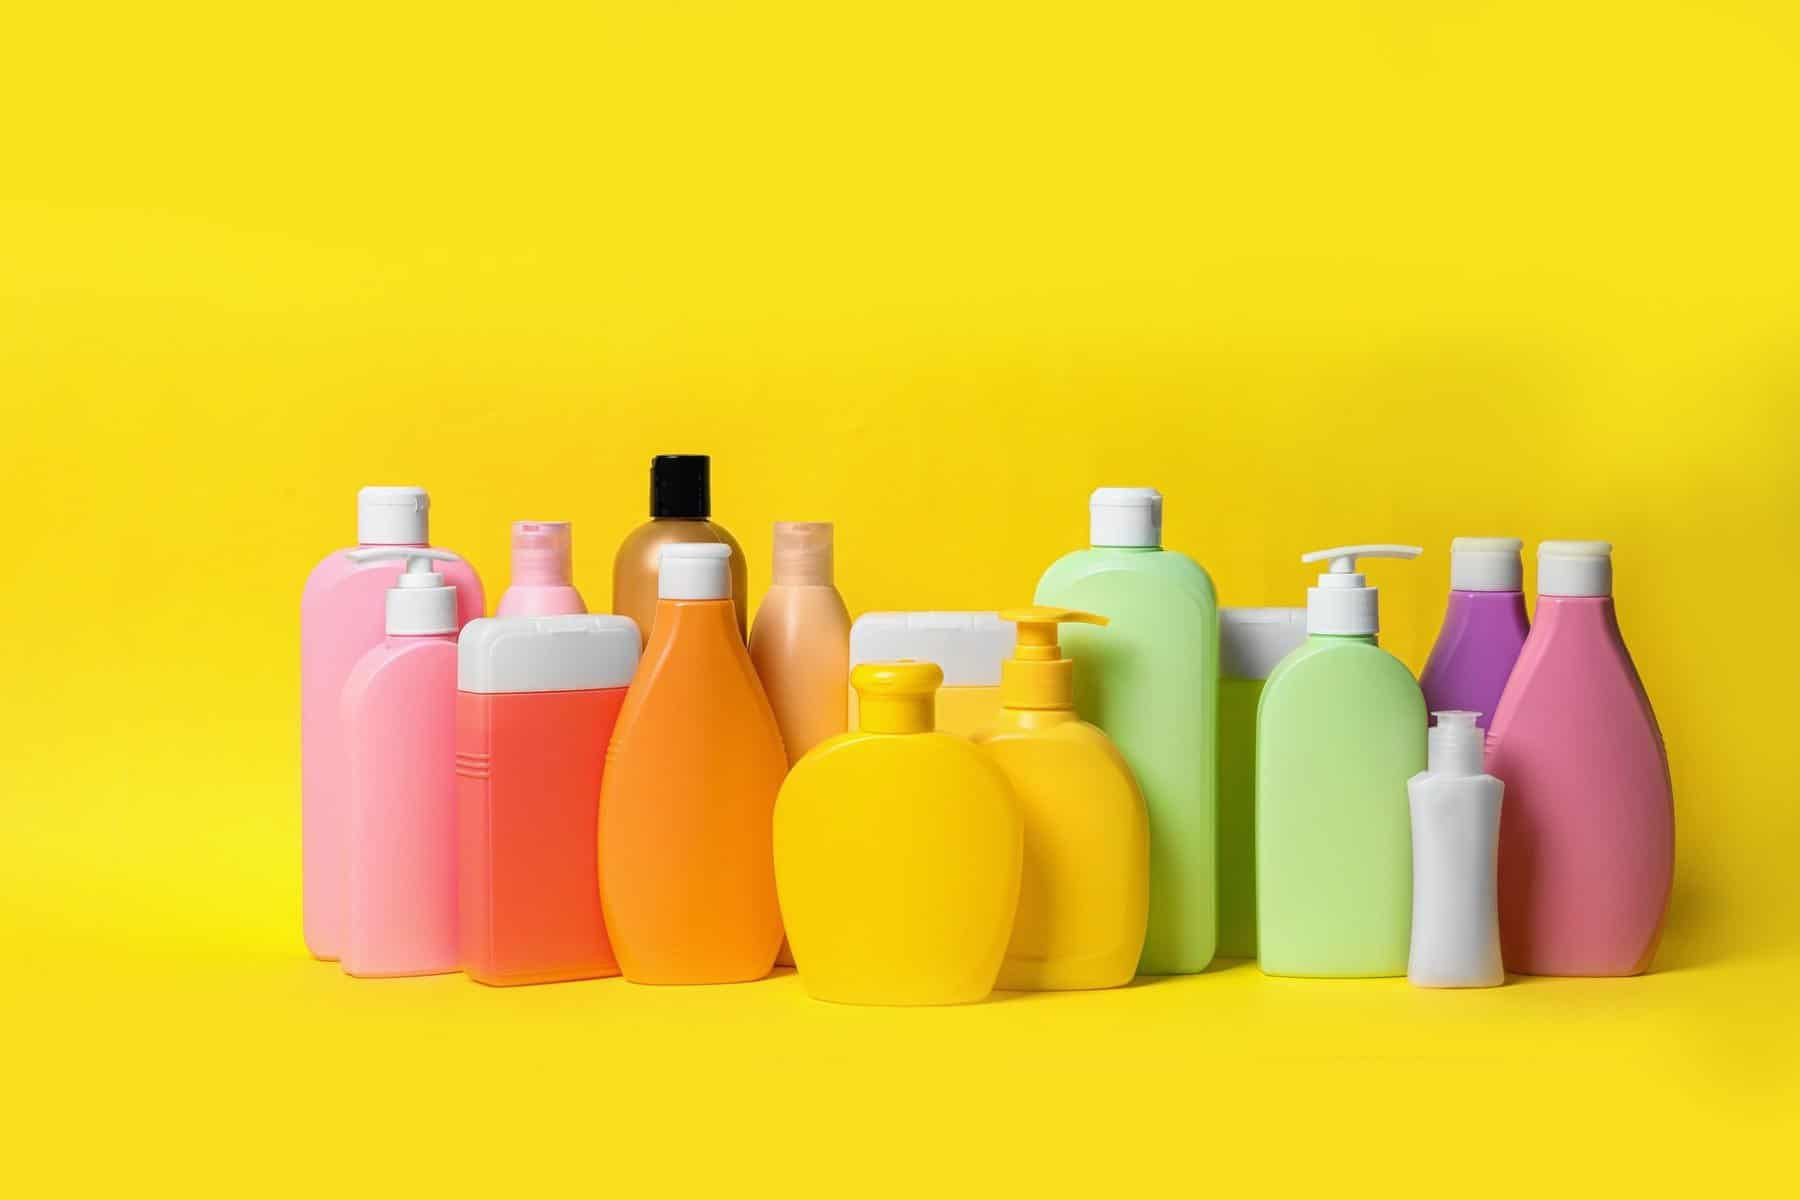 Price Different bottles of shampoo on yellow background. Natural cosmetic products showing different competitor prices or an article by Octopus Intelligence. We isolate your problems, reduce risk and uncertainty and deliver intelligence-led answers and innovative solutions. Dedicated to help you win.